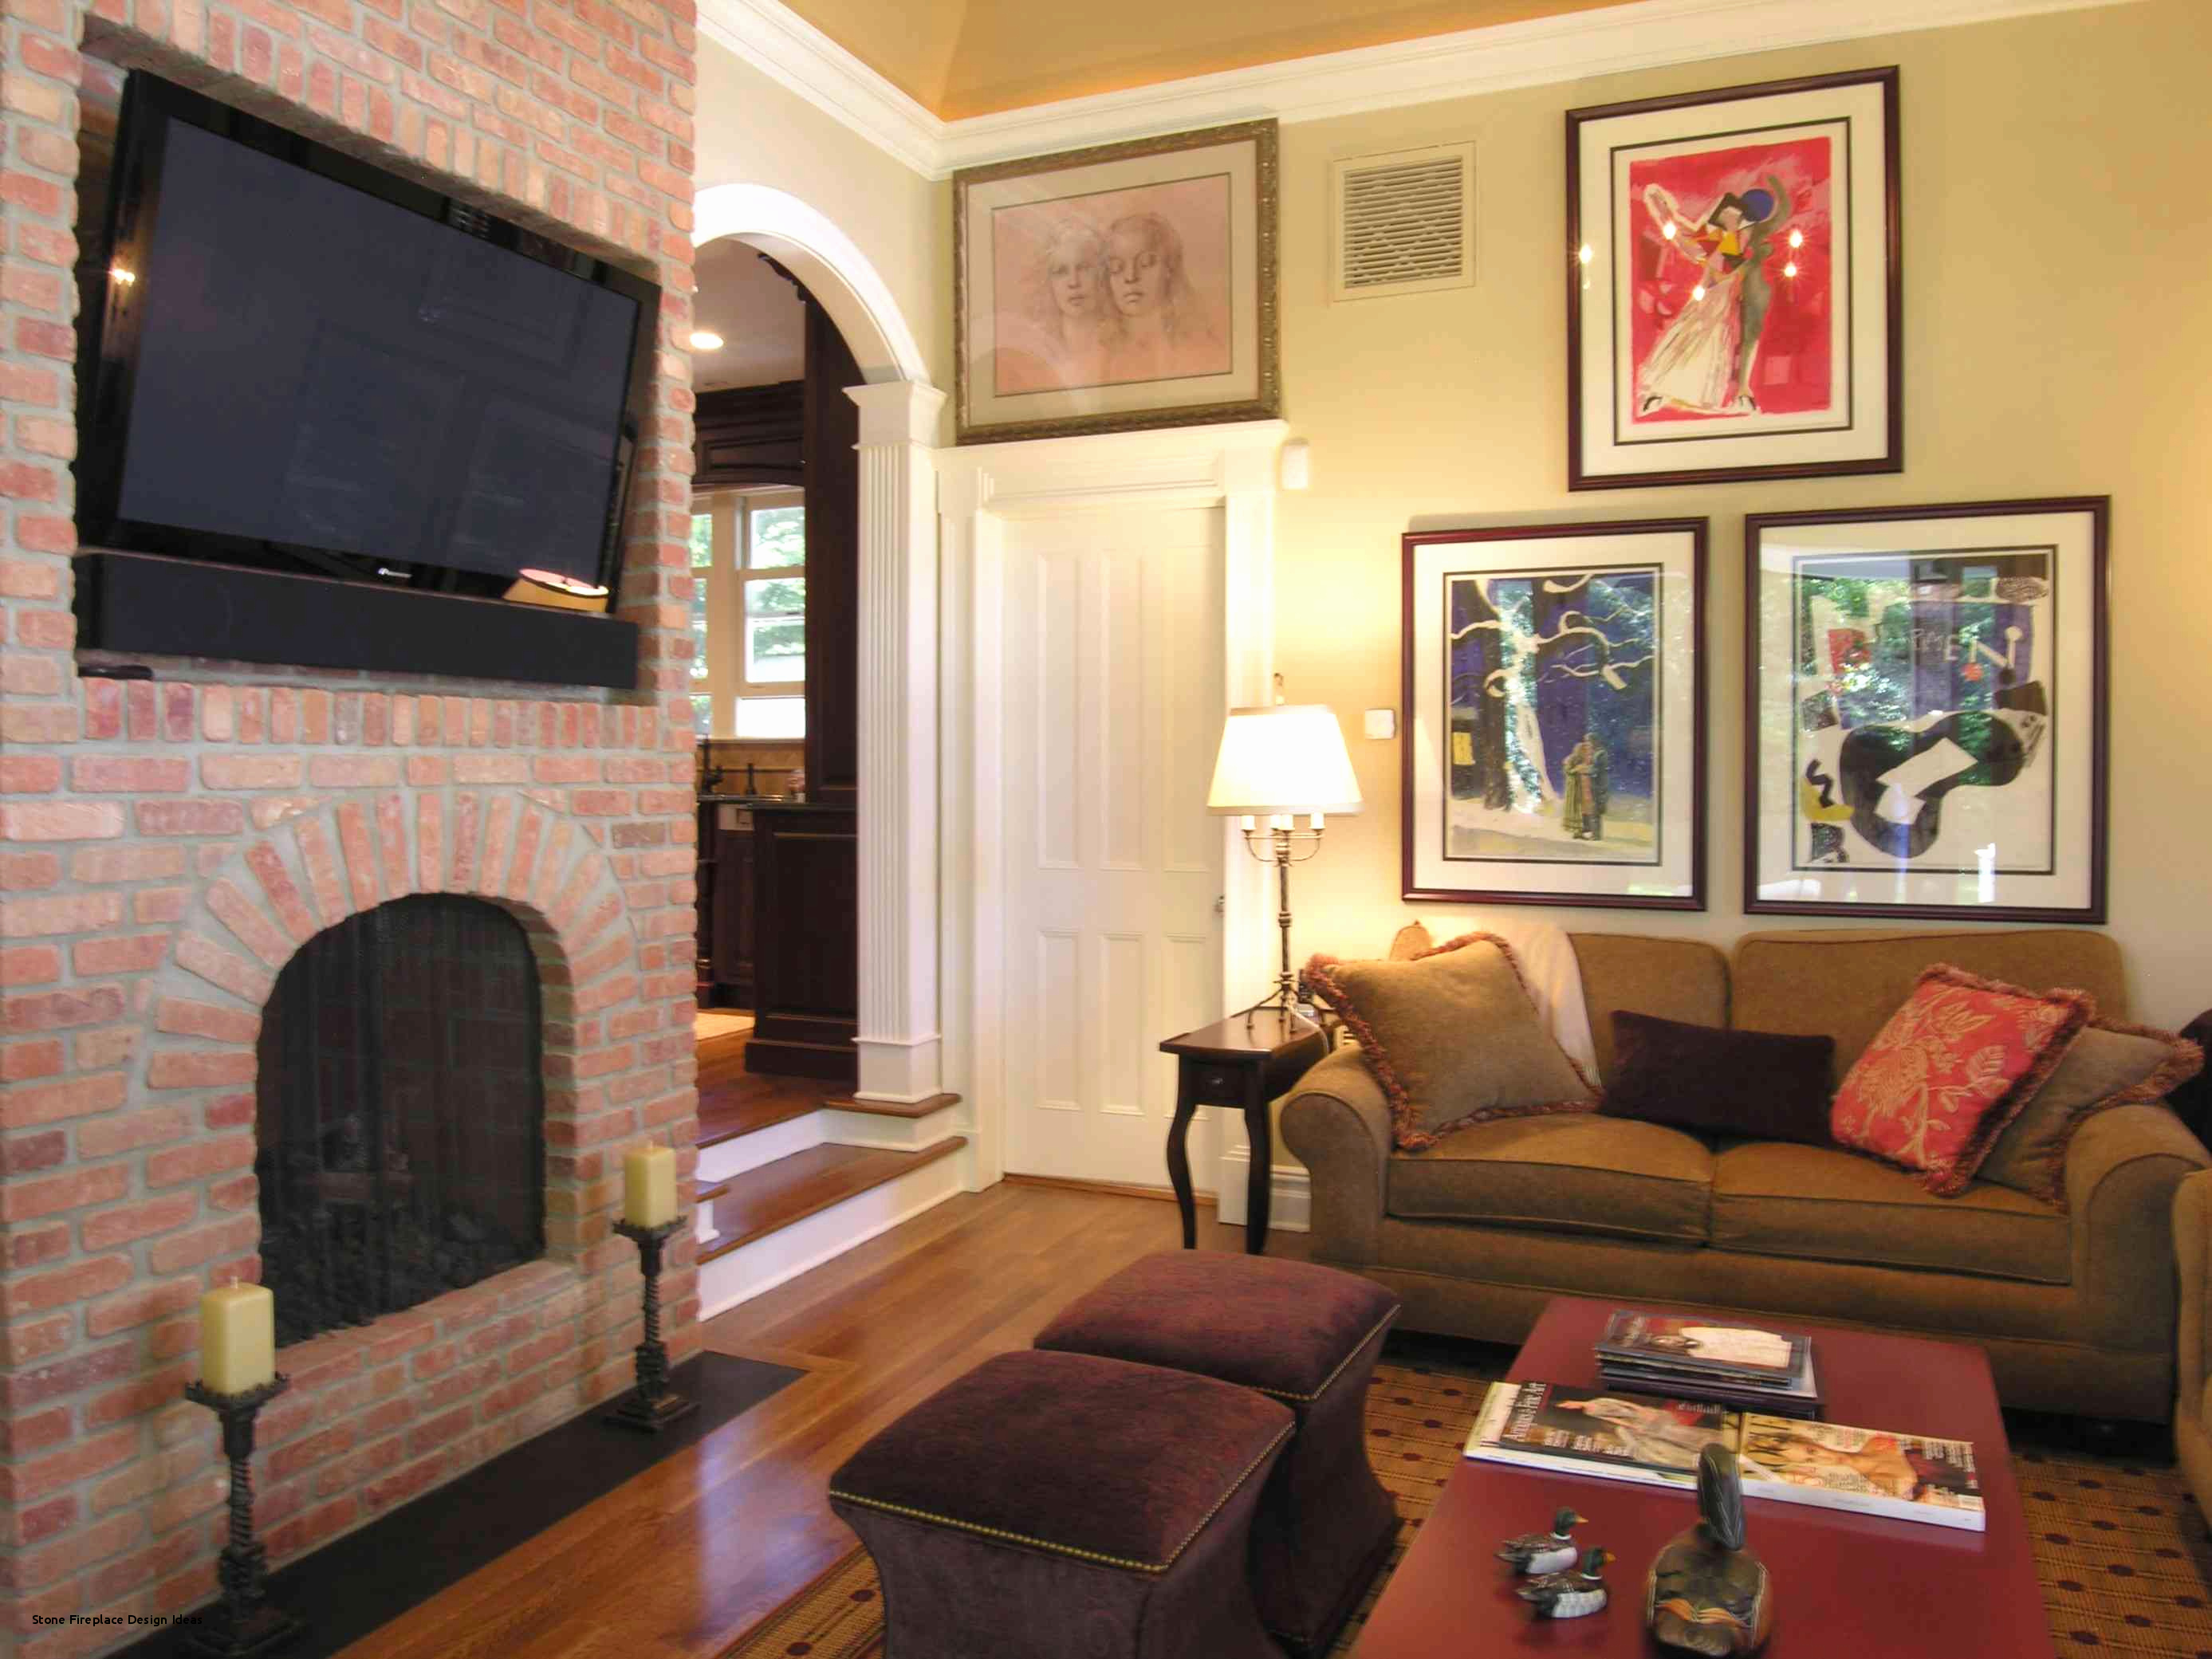 fireplace interior design awesome tag fireplace design 0d fireplaces new stone fireplace design ideas of stone fireplace design ideas